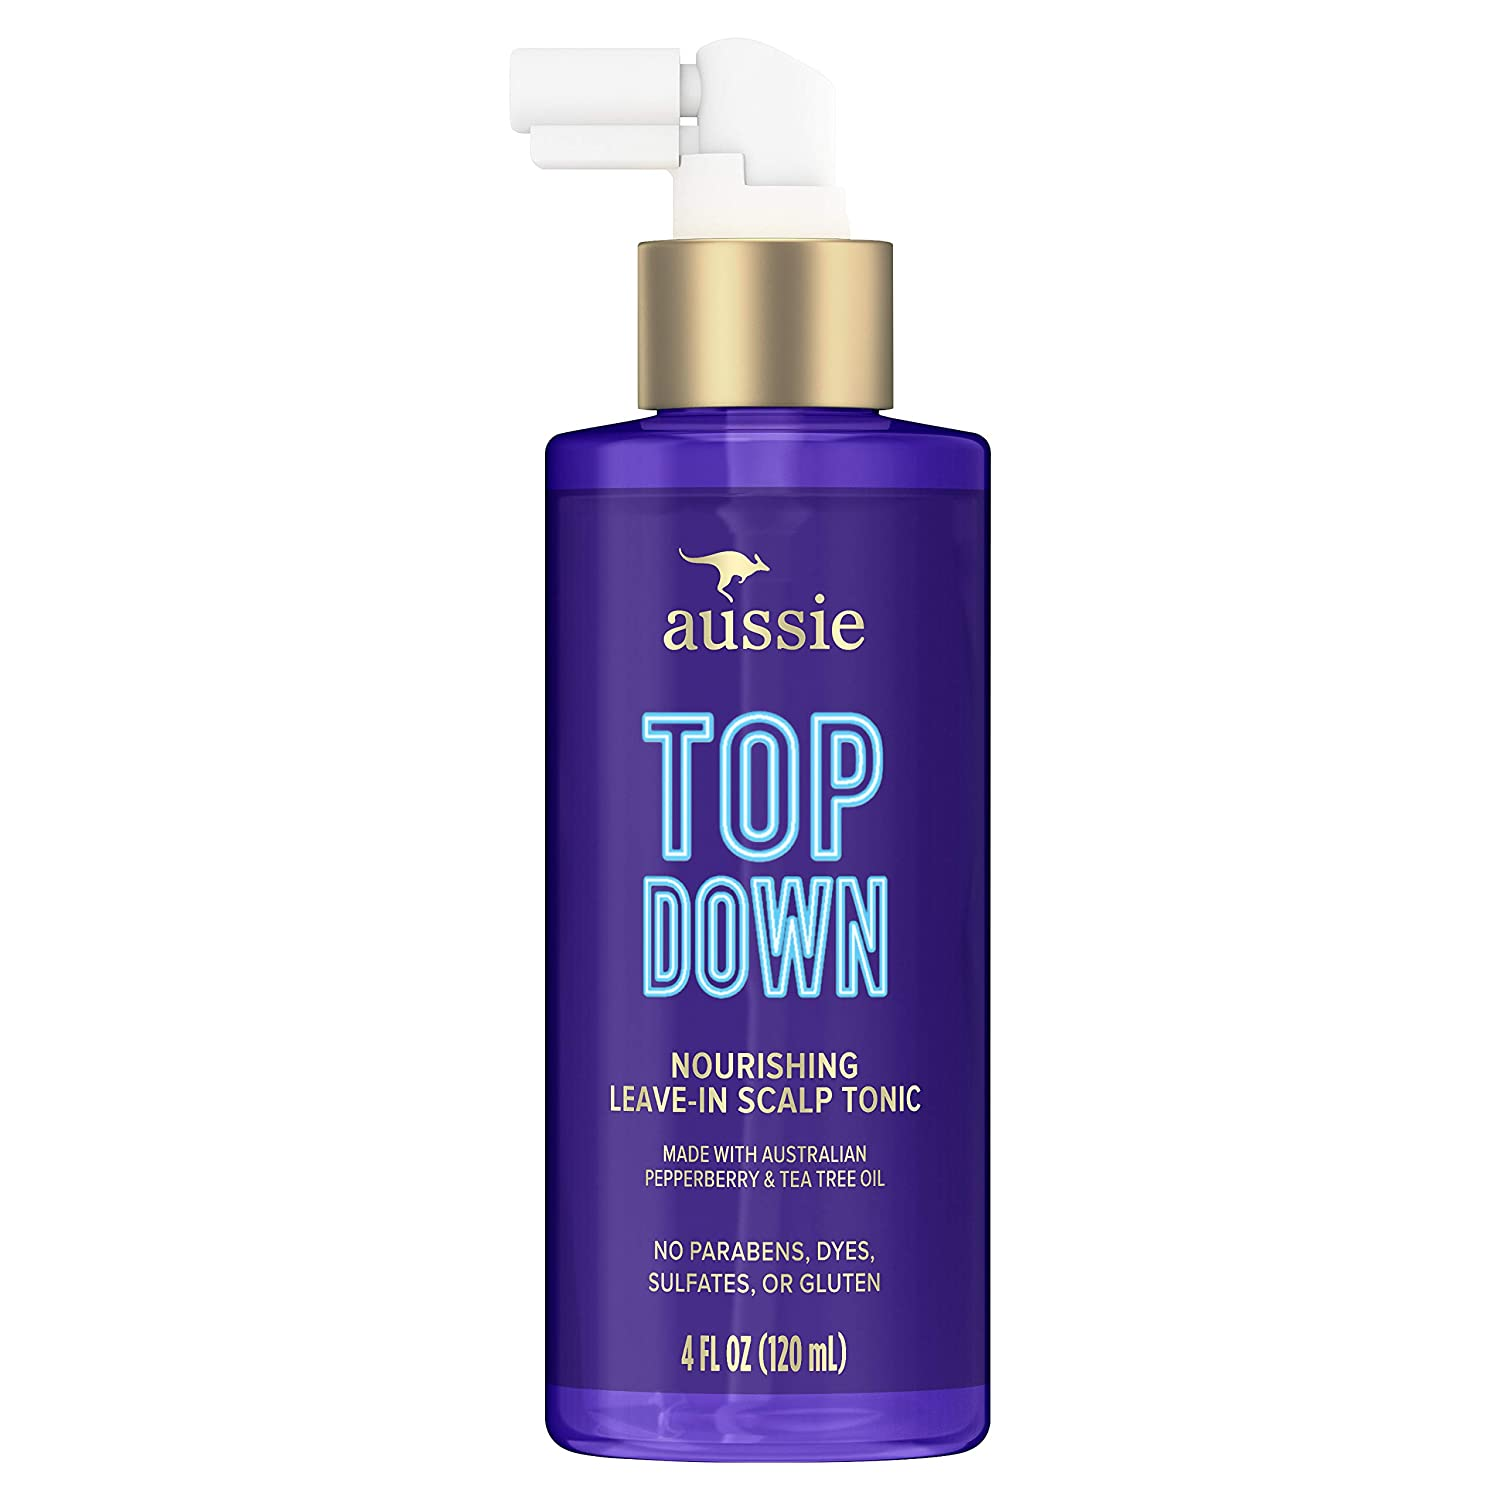 Aussie Top Down Nourishing Leave-In Scalp Tonic, Infused with Australian Pepperberry and Tea Tree Oil, Paraben & Dye Free, 4 Oz